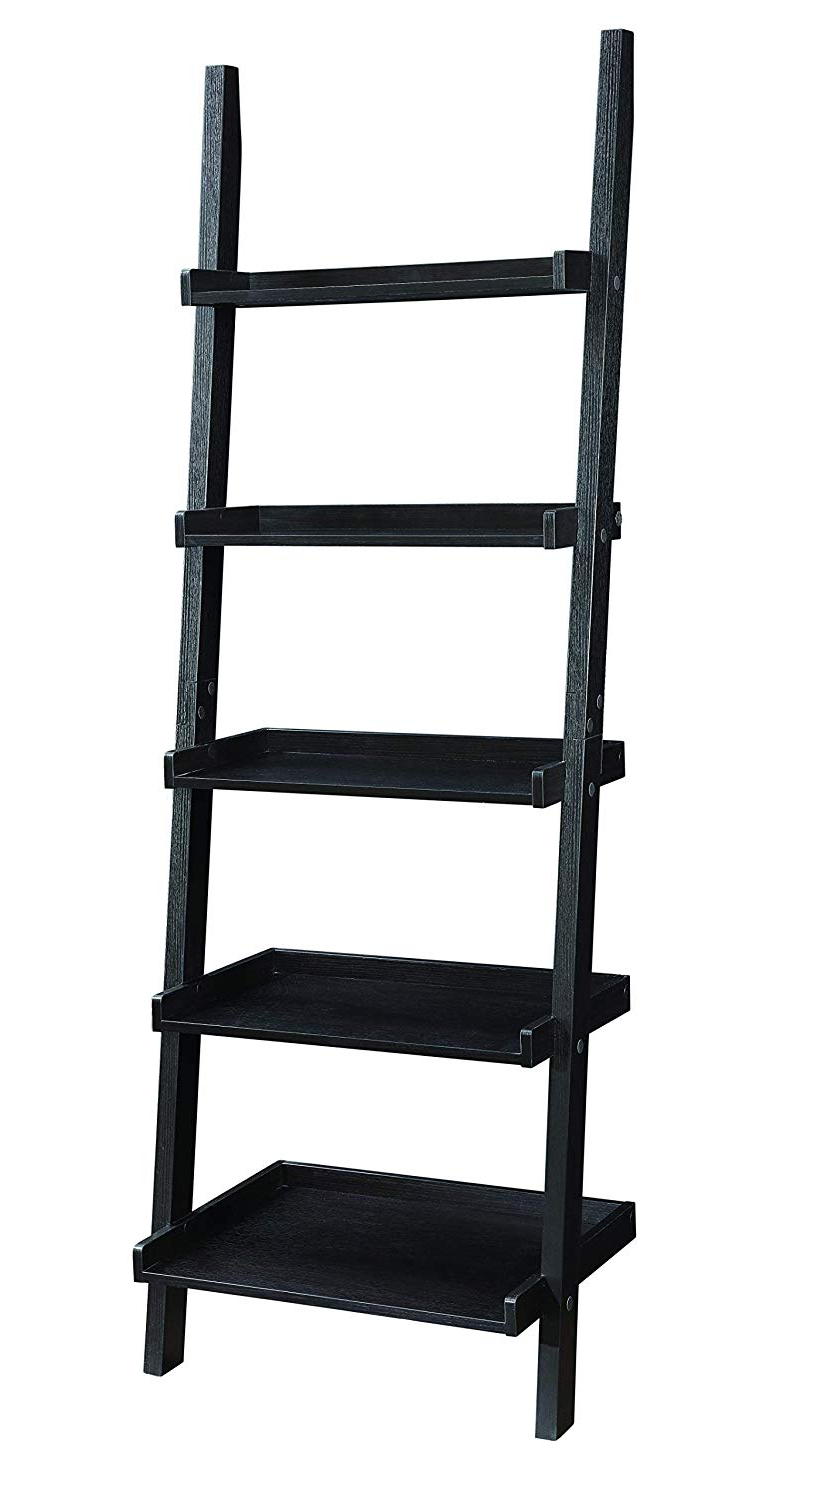 2020 Dunhill Ladder Bookcases For Coaster Home Furnishings 800338 Colella 5 Shelf Ladder Bookcase, Cappuccino (View 2 of 20)